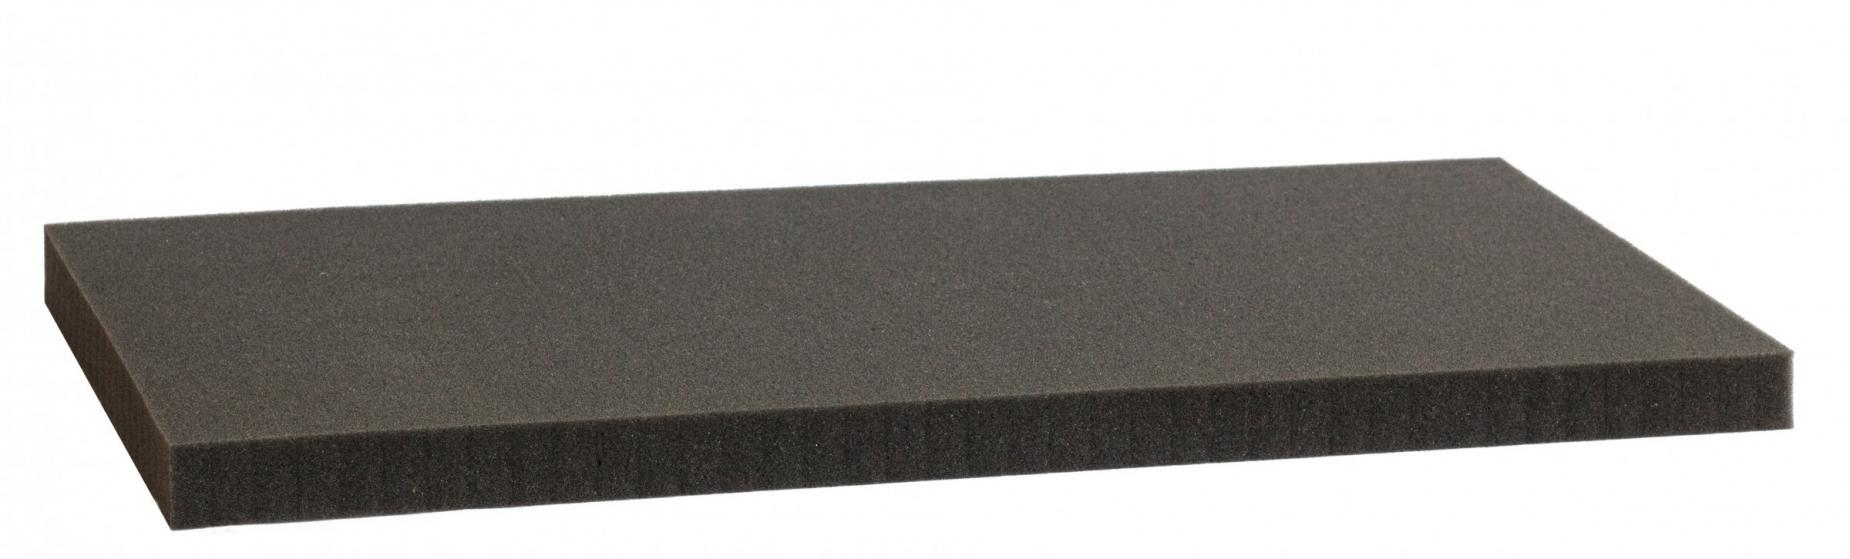 600 mm x 400 mm x 20 mm - Raster 15 mm - Pick and Pluck / Pre-Cubed foam tray